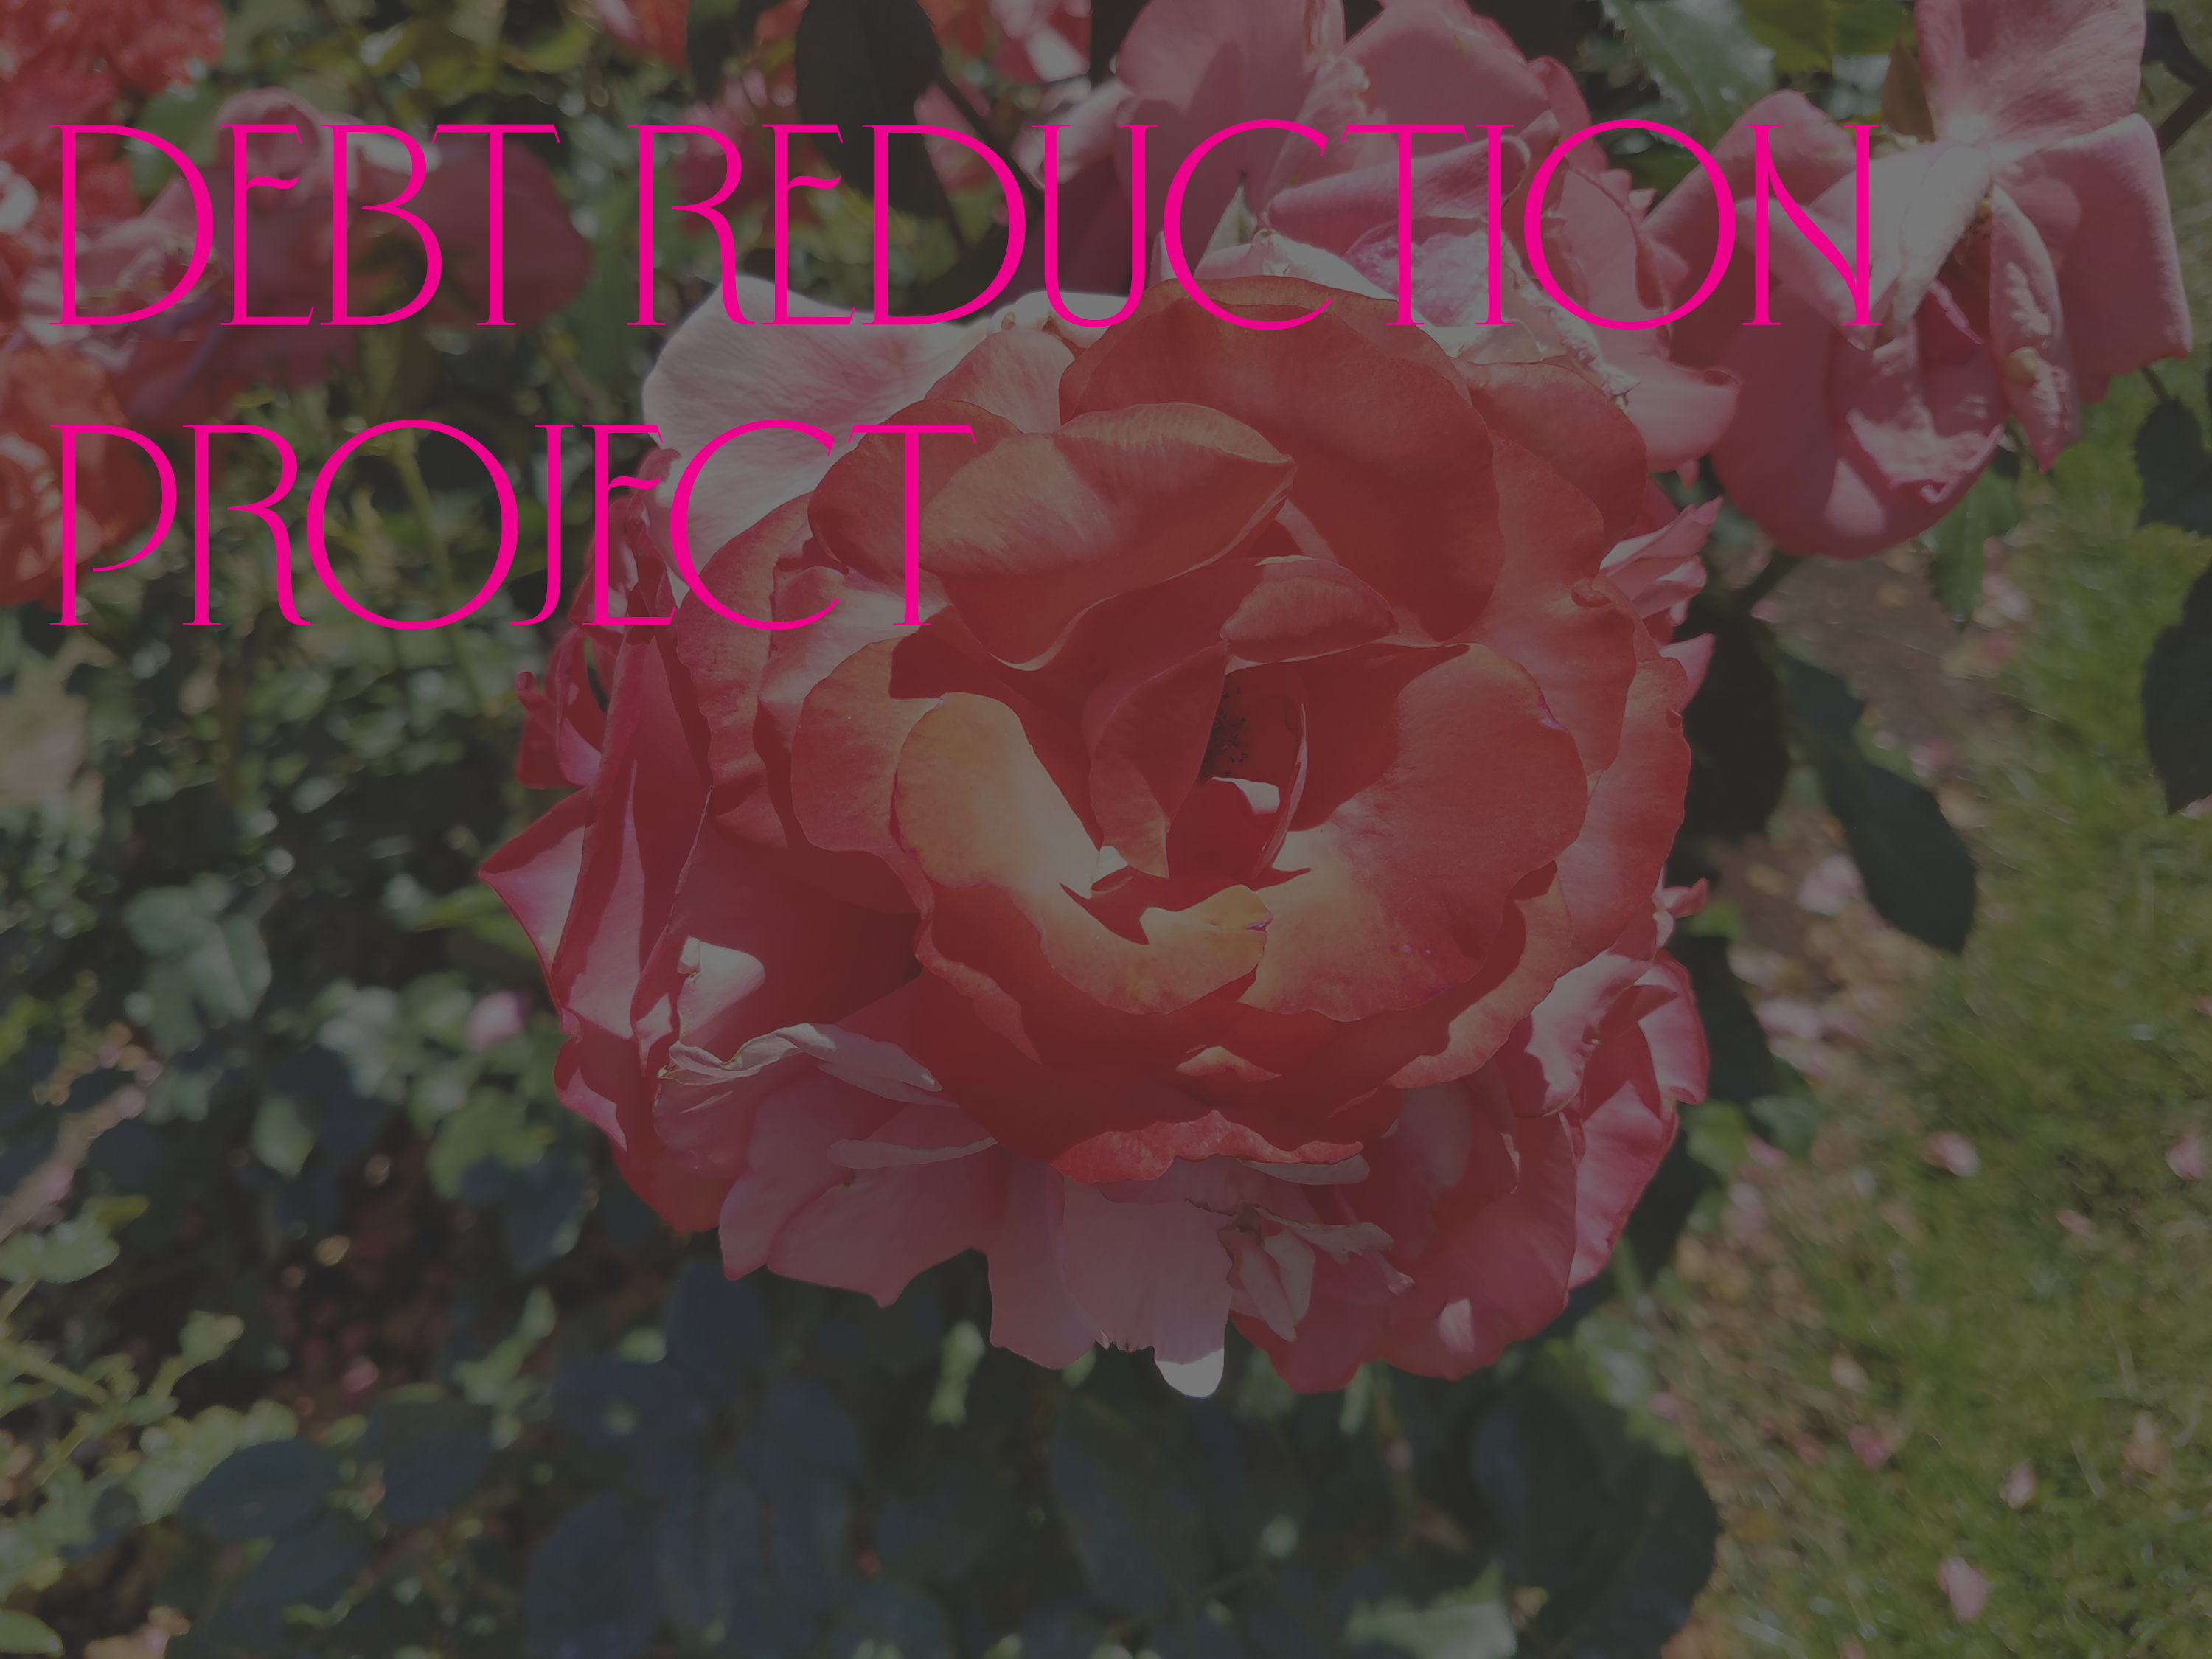 Debt Reduction Project